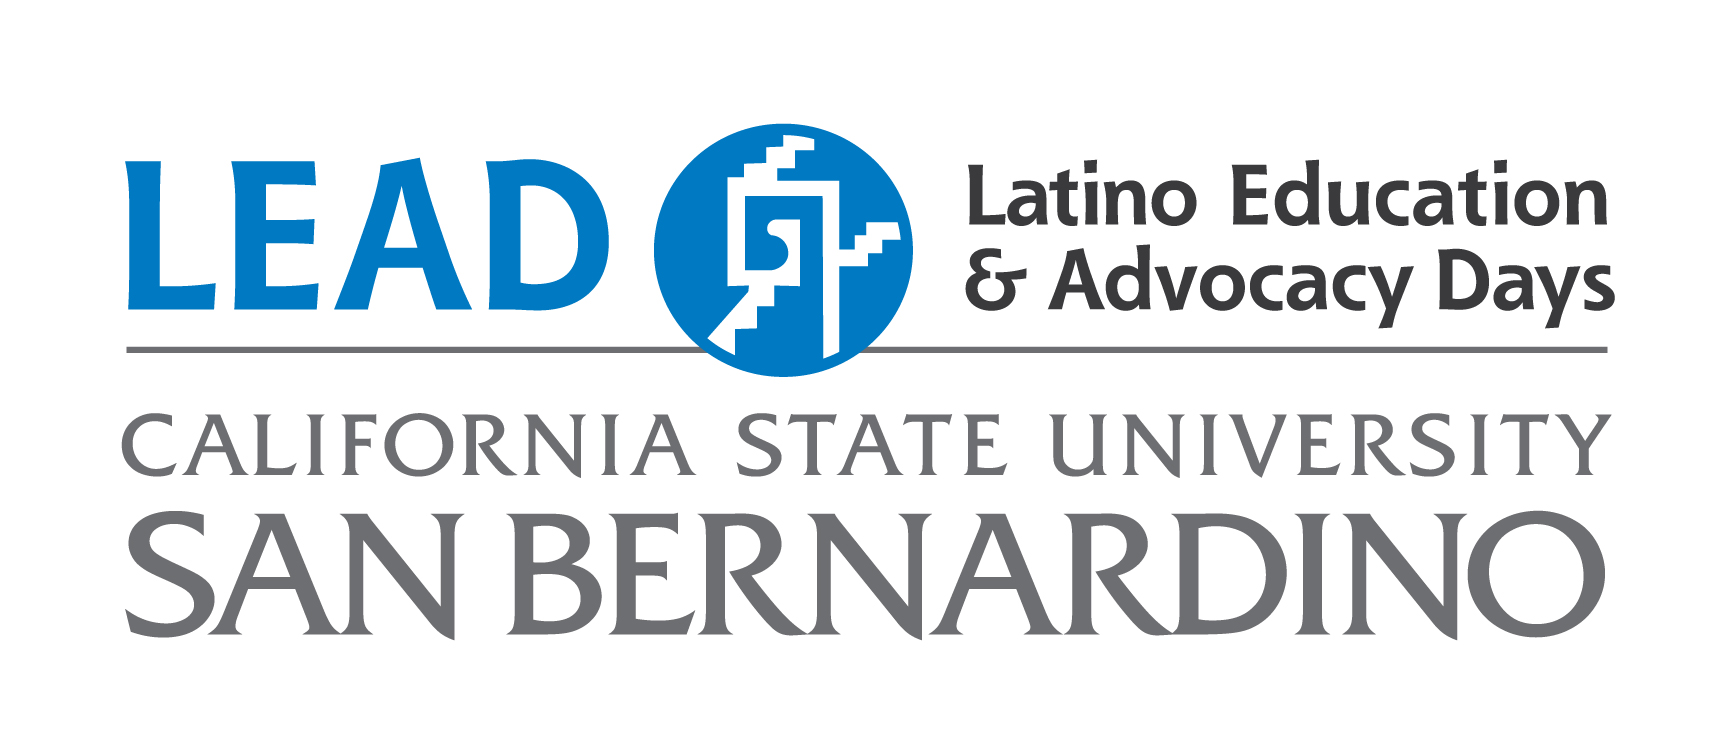 LEAD - Latino Education & Advocacy Days - California State University, San Bernardino